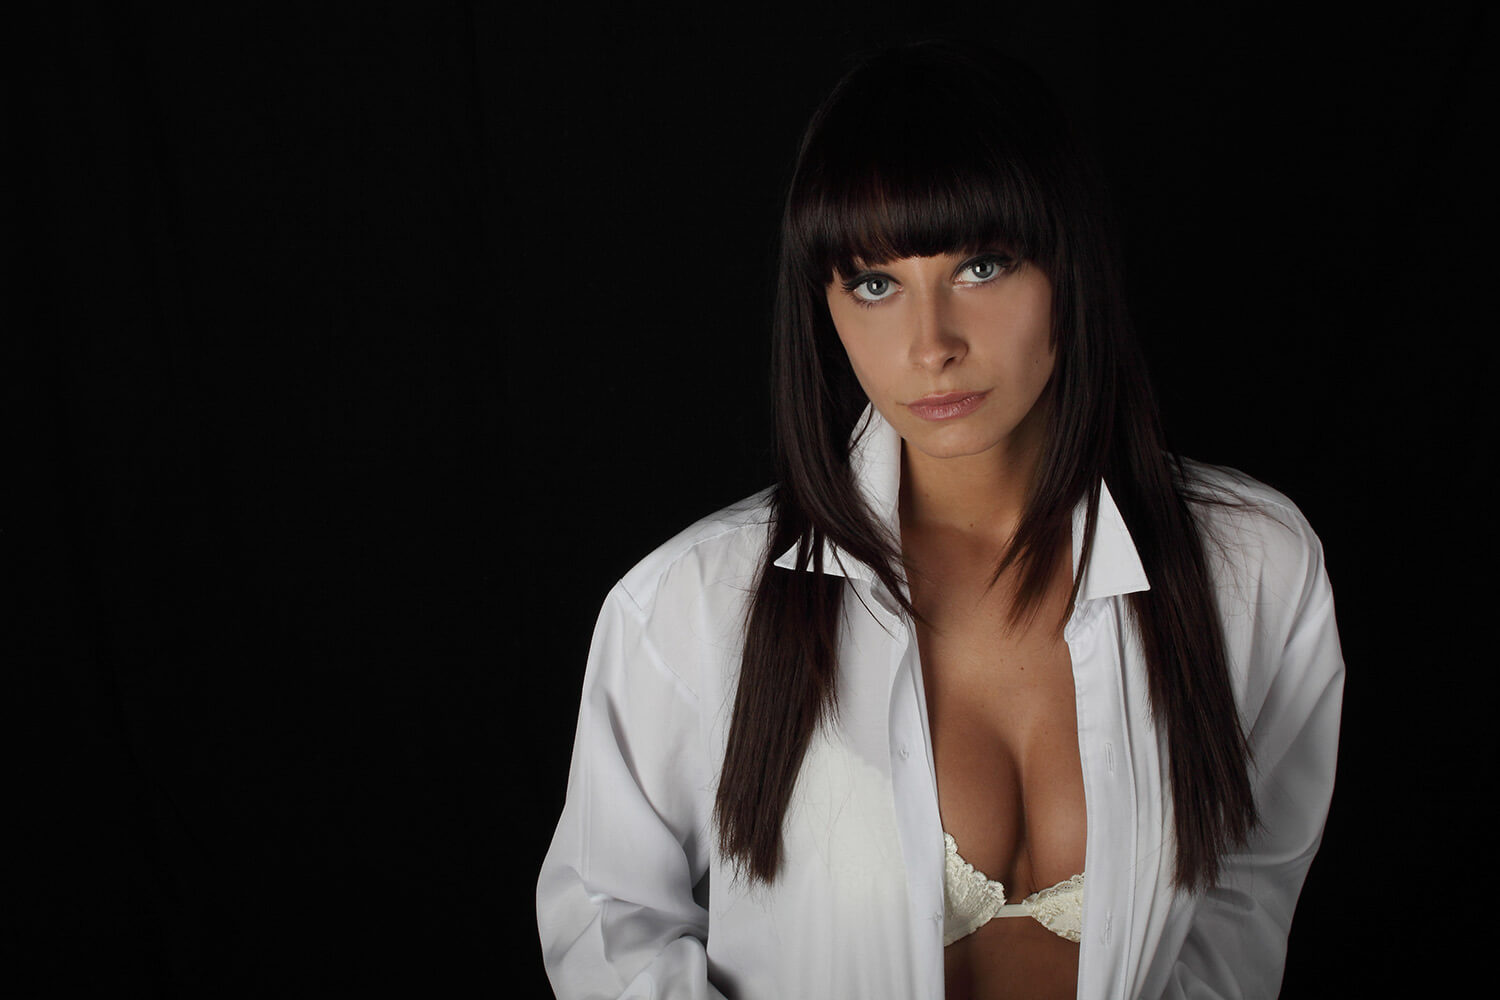 boudoir photo of a woman in lingerie and in a men's shirt on a black background